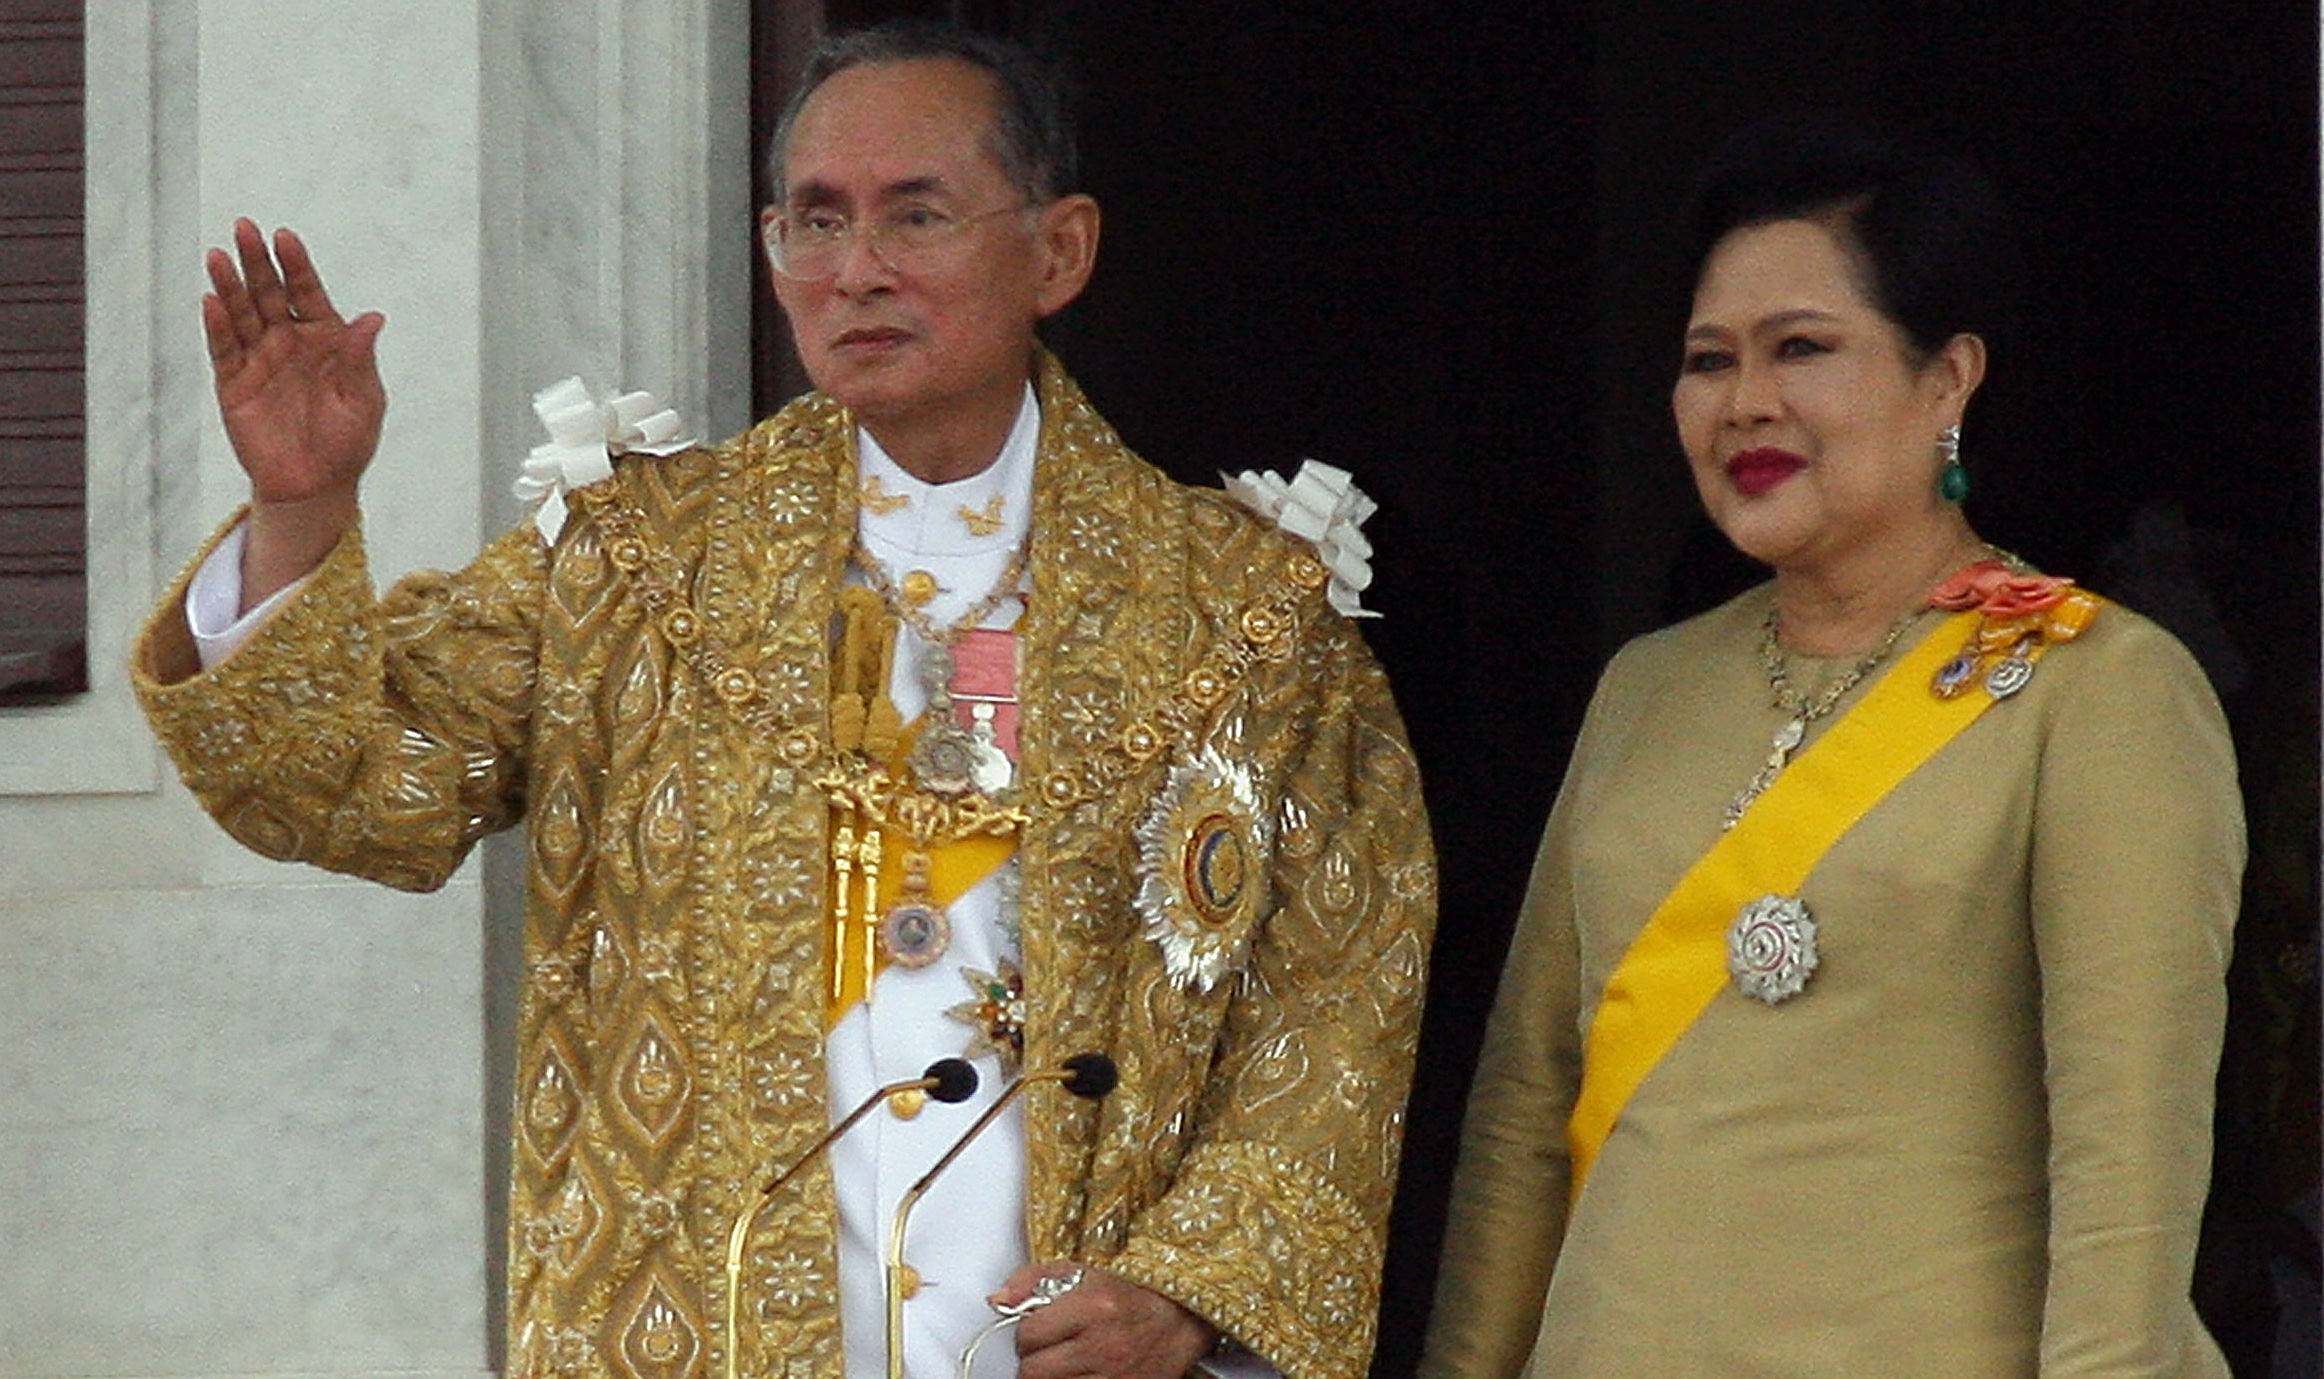 Thailand king dead, Crown Prince Maha Vajiralongkorn new king, who will be king of Thailand, longest reigning monarch